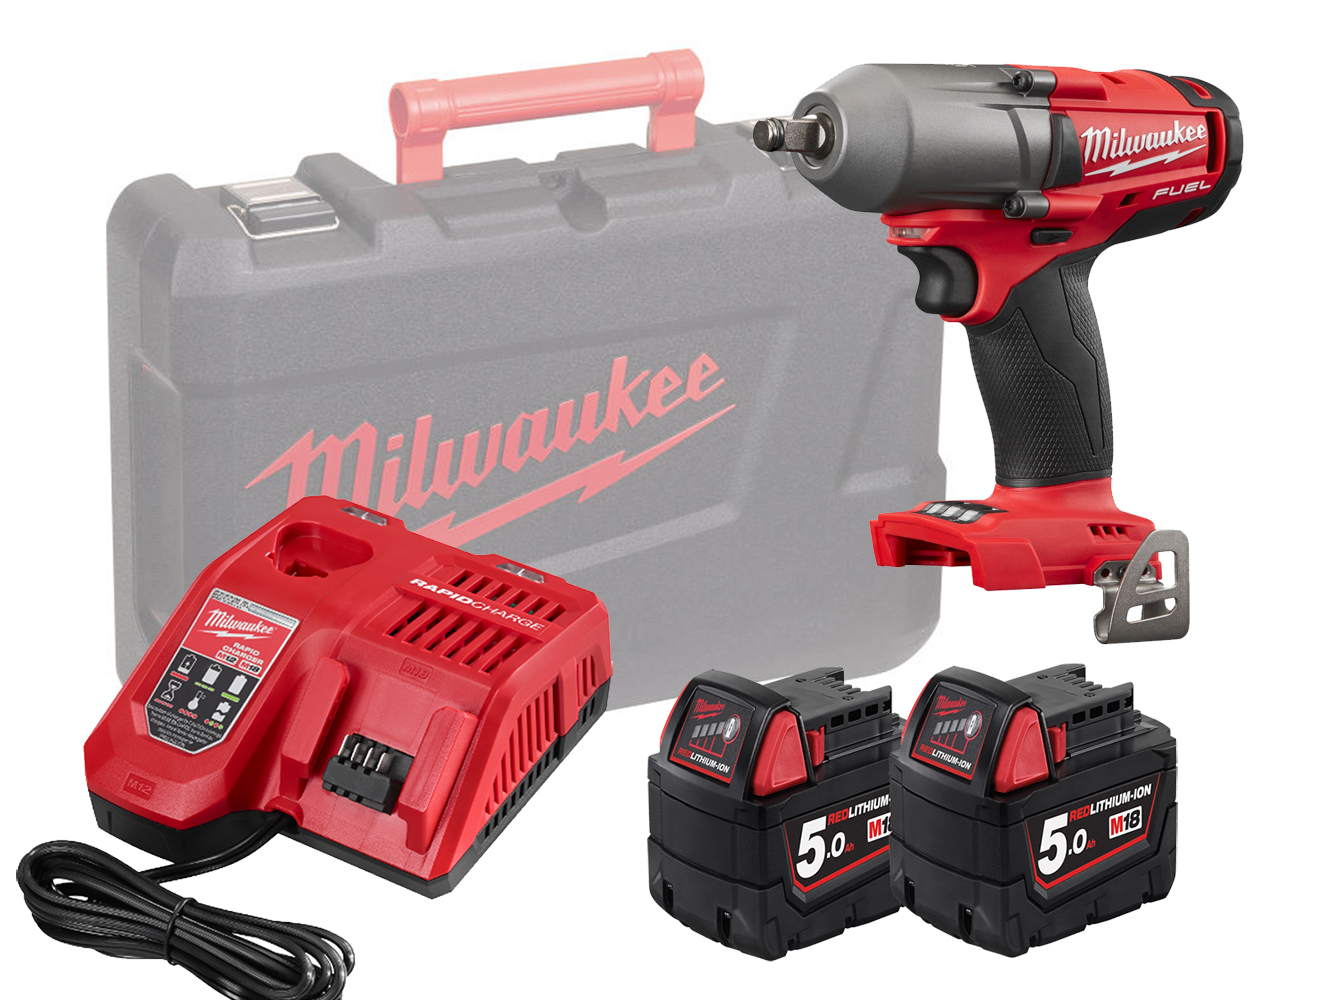 Milwaukee M18FMTIWF12 18V 1/2In Mid Torque Impact Wrench - 5.0Ah Pack